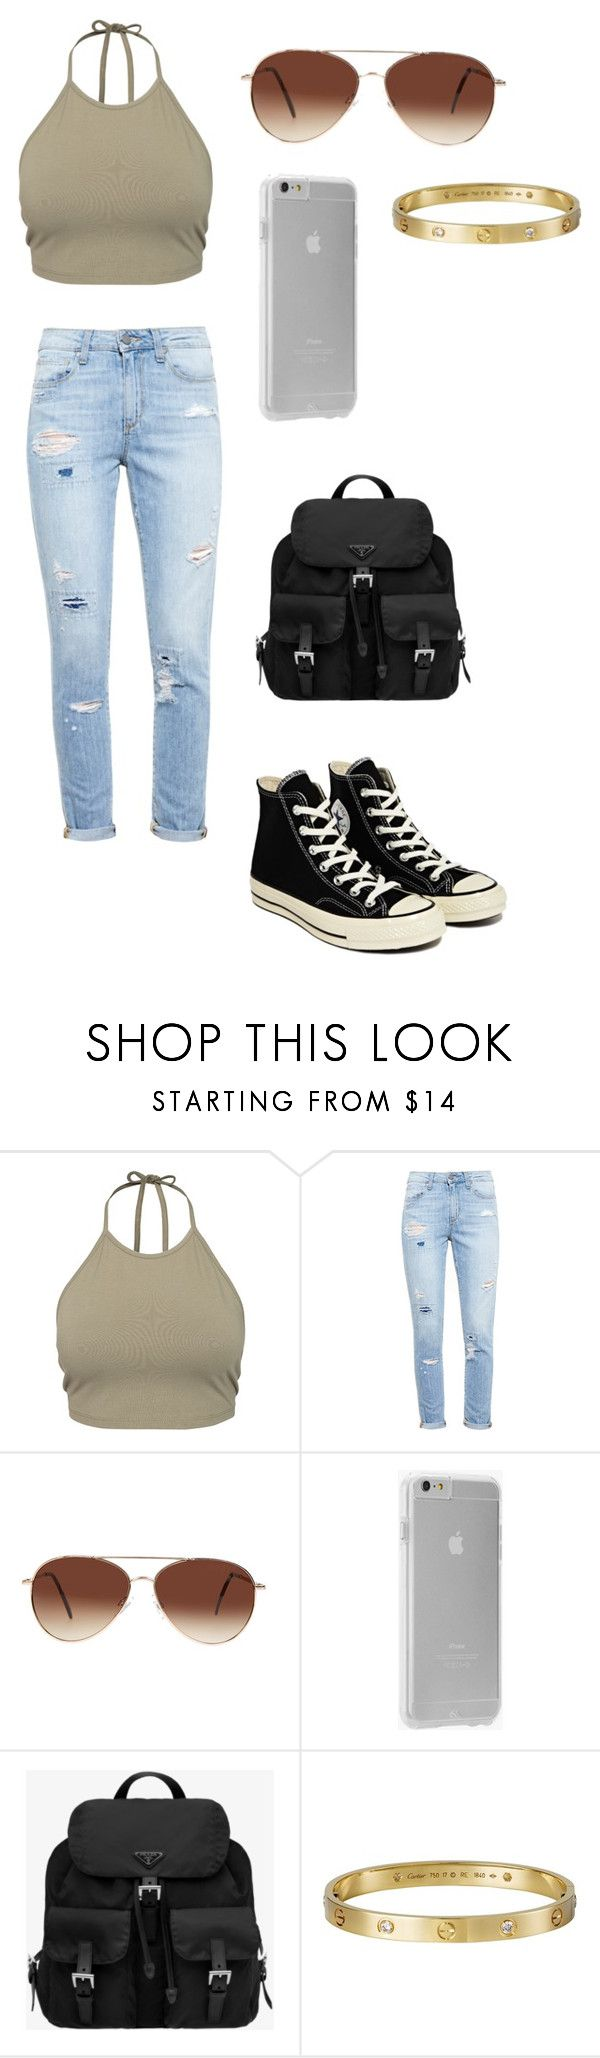 """""""Madison Beer Style #3"""" by taejin-seokhyung ❤ liked on Polyvore featuring NLY Trend, Paige Denim, Eloquii, Case-Mate, Prada, Cartier, Converse, women's clothing, women's fashion and women"""